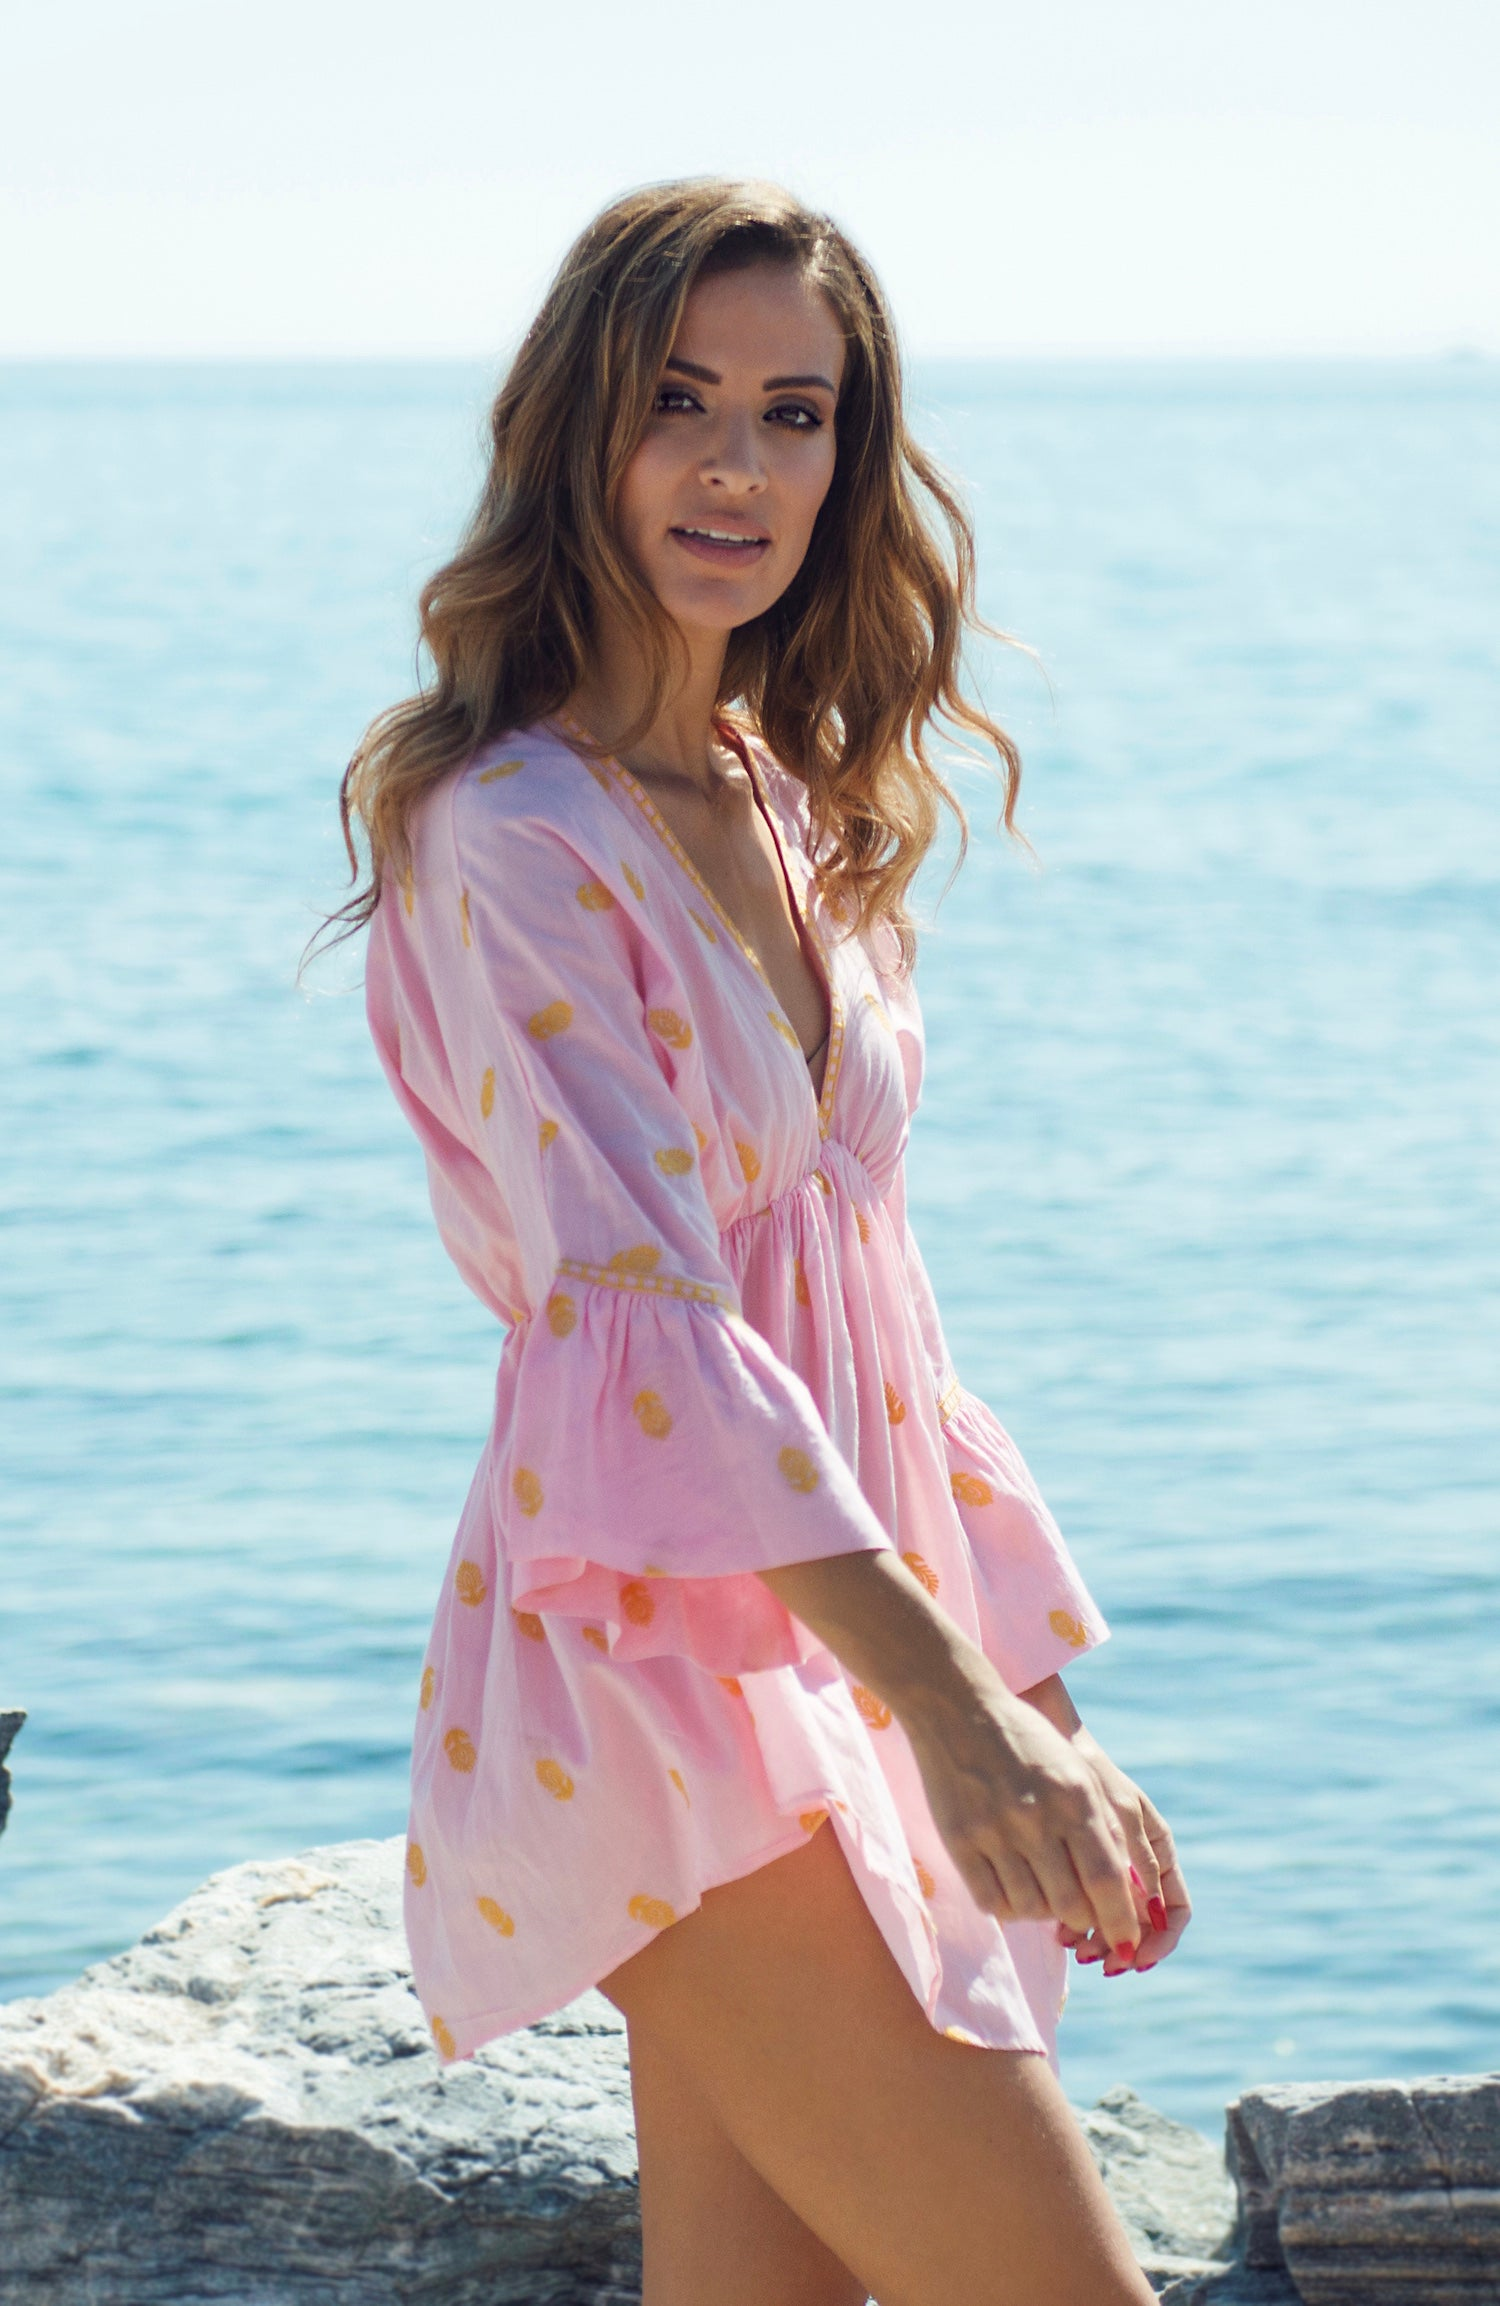 Marbella designer kaftan cotton top/ beach cover up (pink) - Guilty Beach